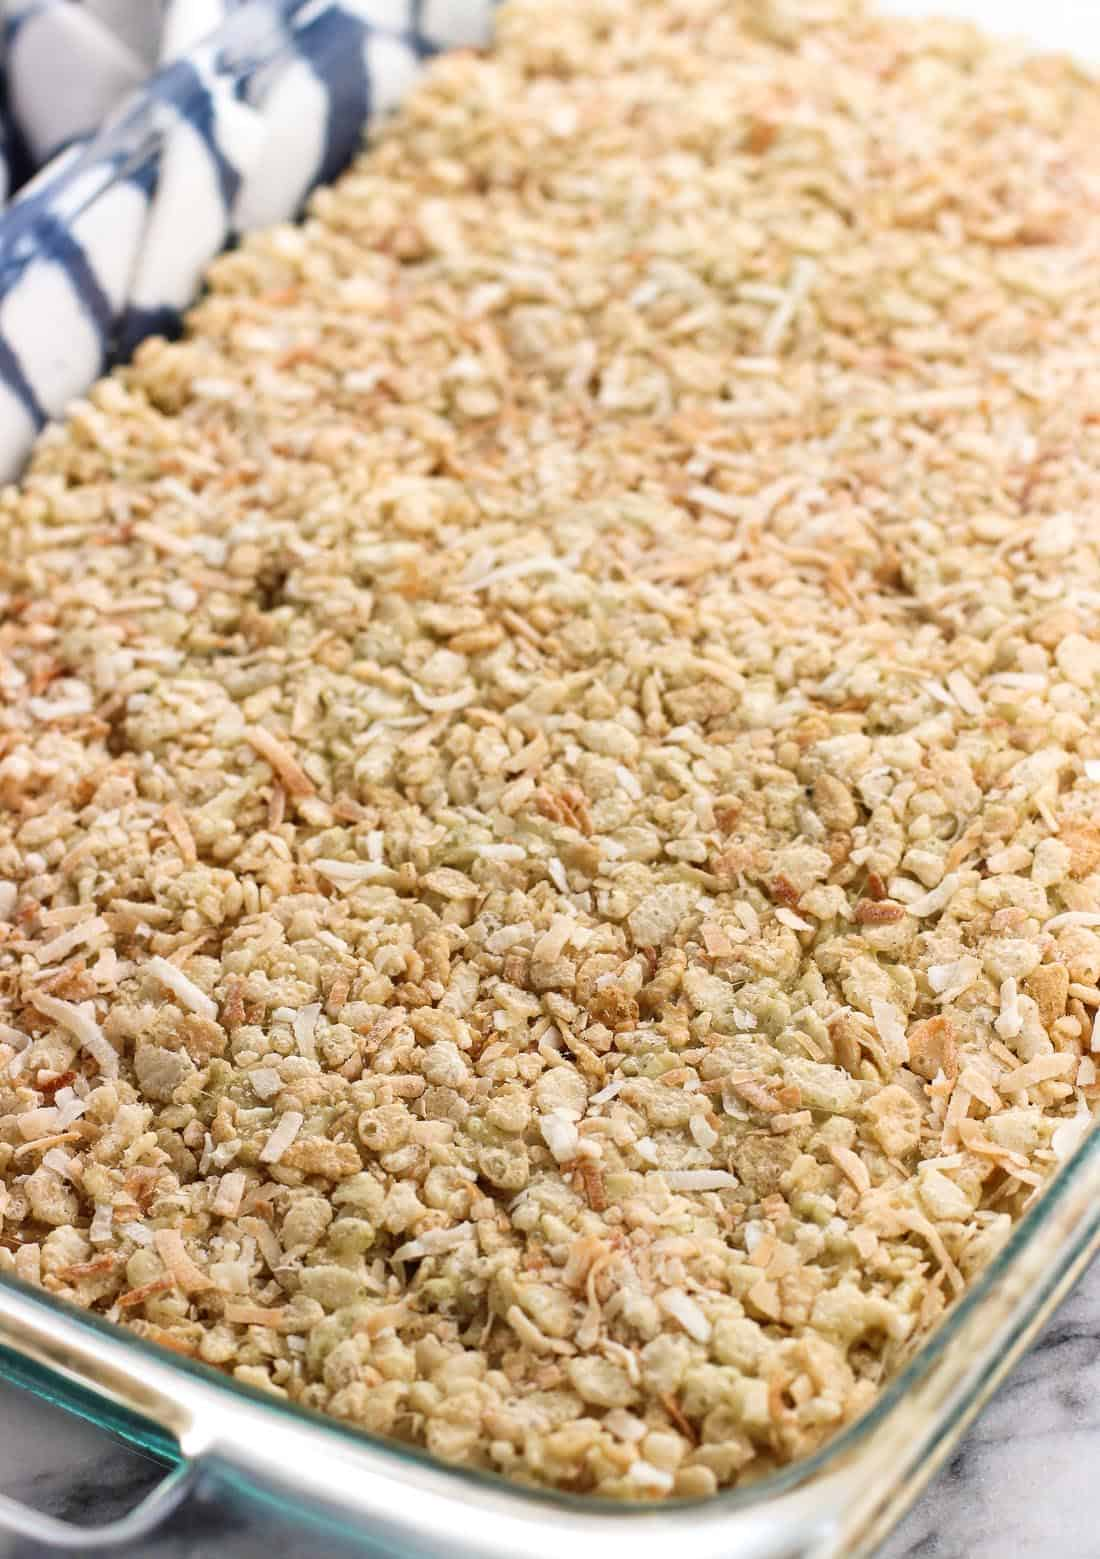 The rice crispy mixture pressed evenly into a rectangular glass dish.